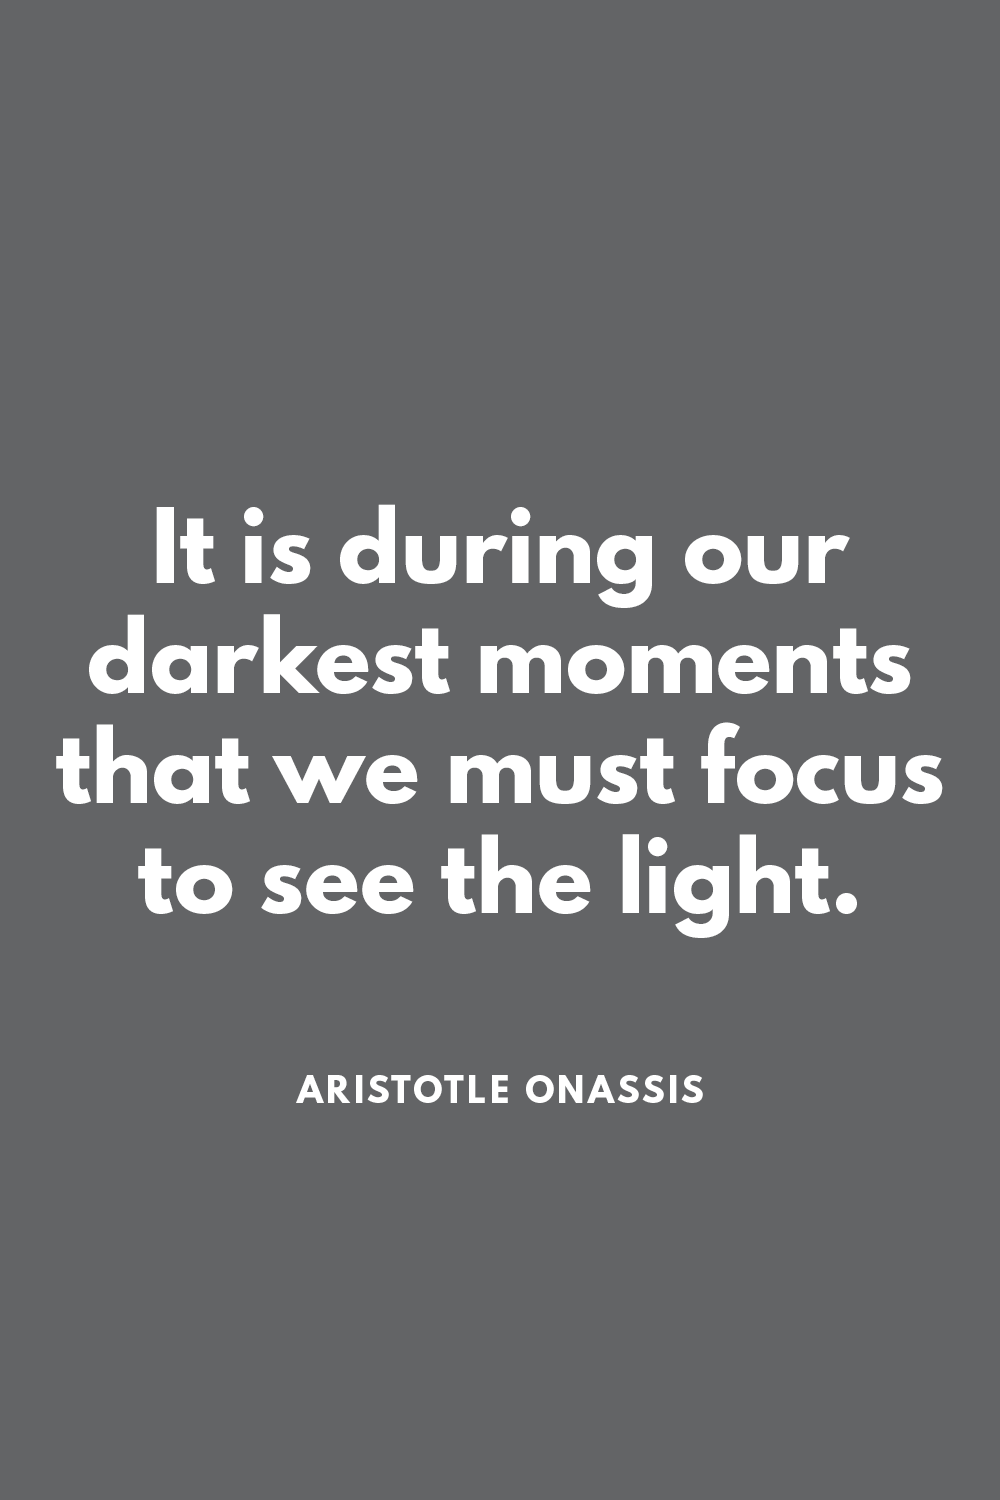 It Is During Our Darkest Moments That We Must Focus To See The Light Aristotle Onassis Mindfulness Quotes Inspirational Quotes Quotes Mindset